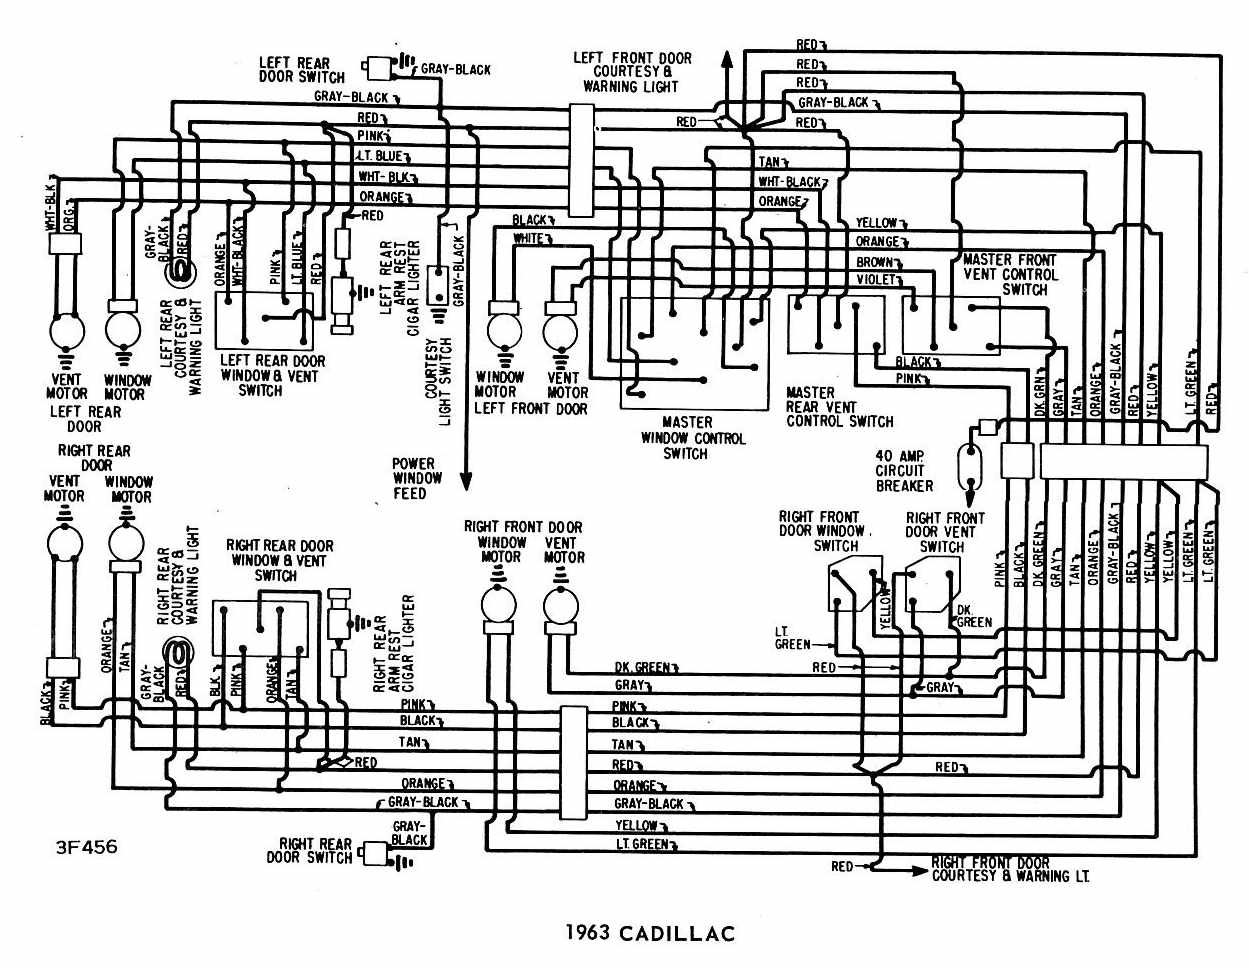 Cadillac+1963+Windows+Wiring+Diagram cadillac 1963 windows wiring diagram all about wiring diagrams 63 falcon wiring diagram at bayanpartner.co